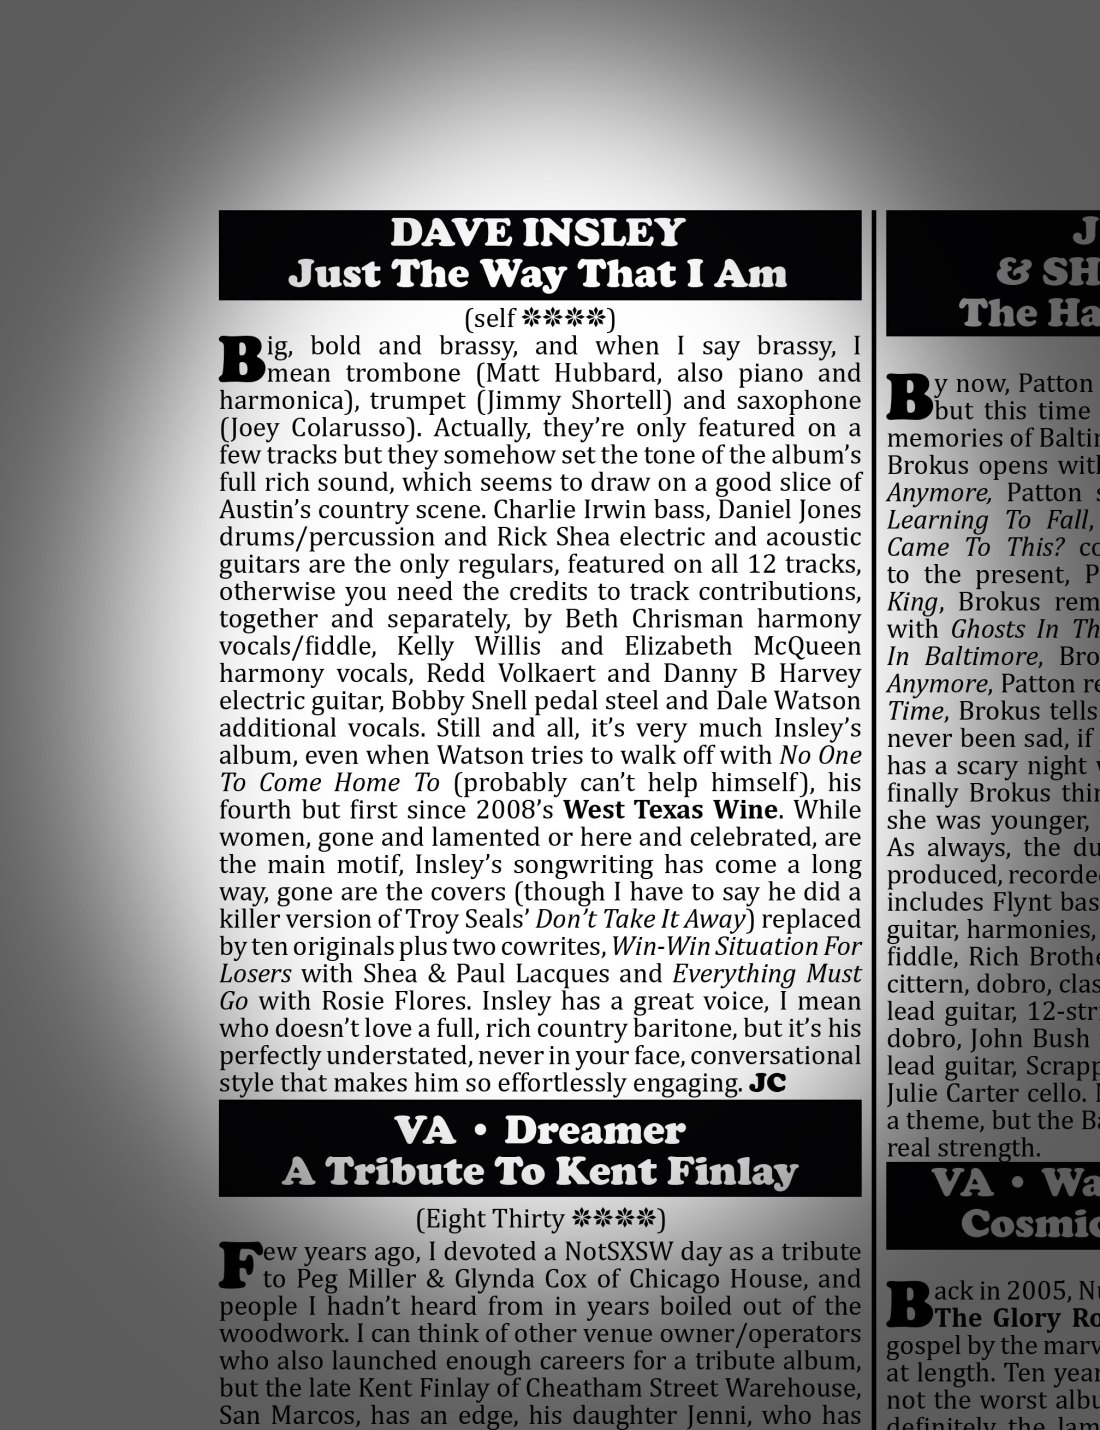 3rd-Coast-Music-review-of-Dave-Insley's-'Just-The-Way-That-I-Am'